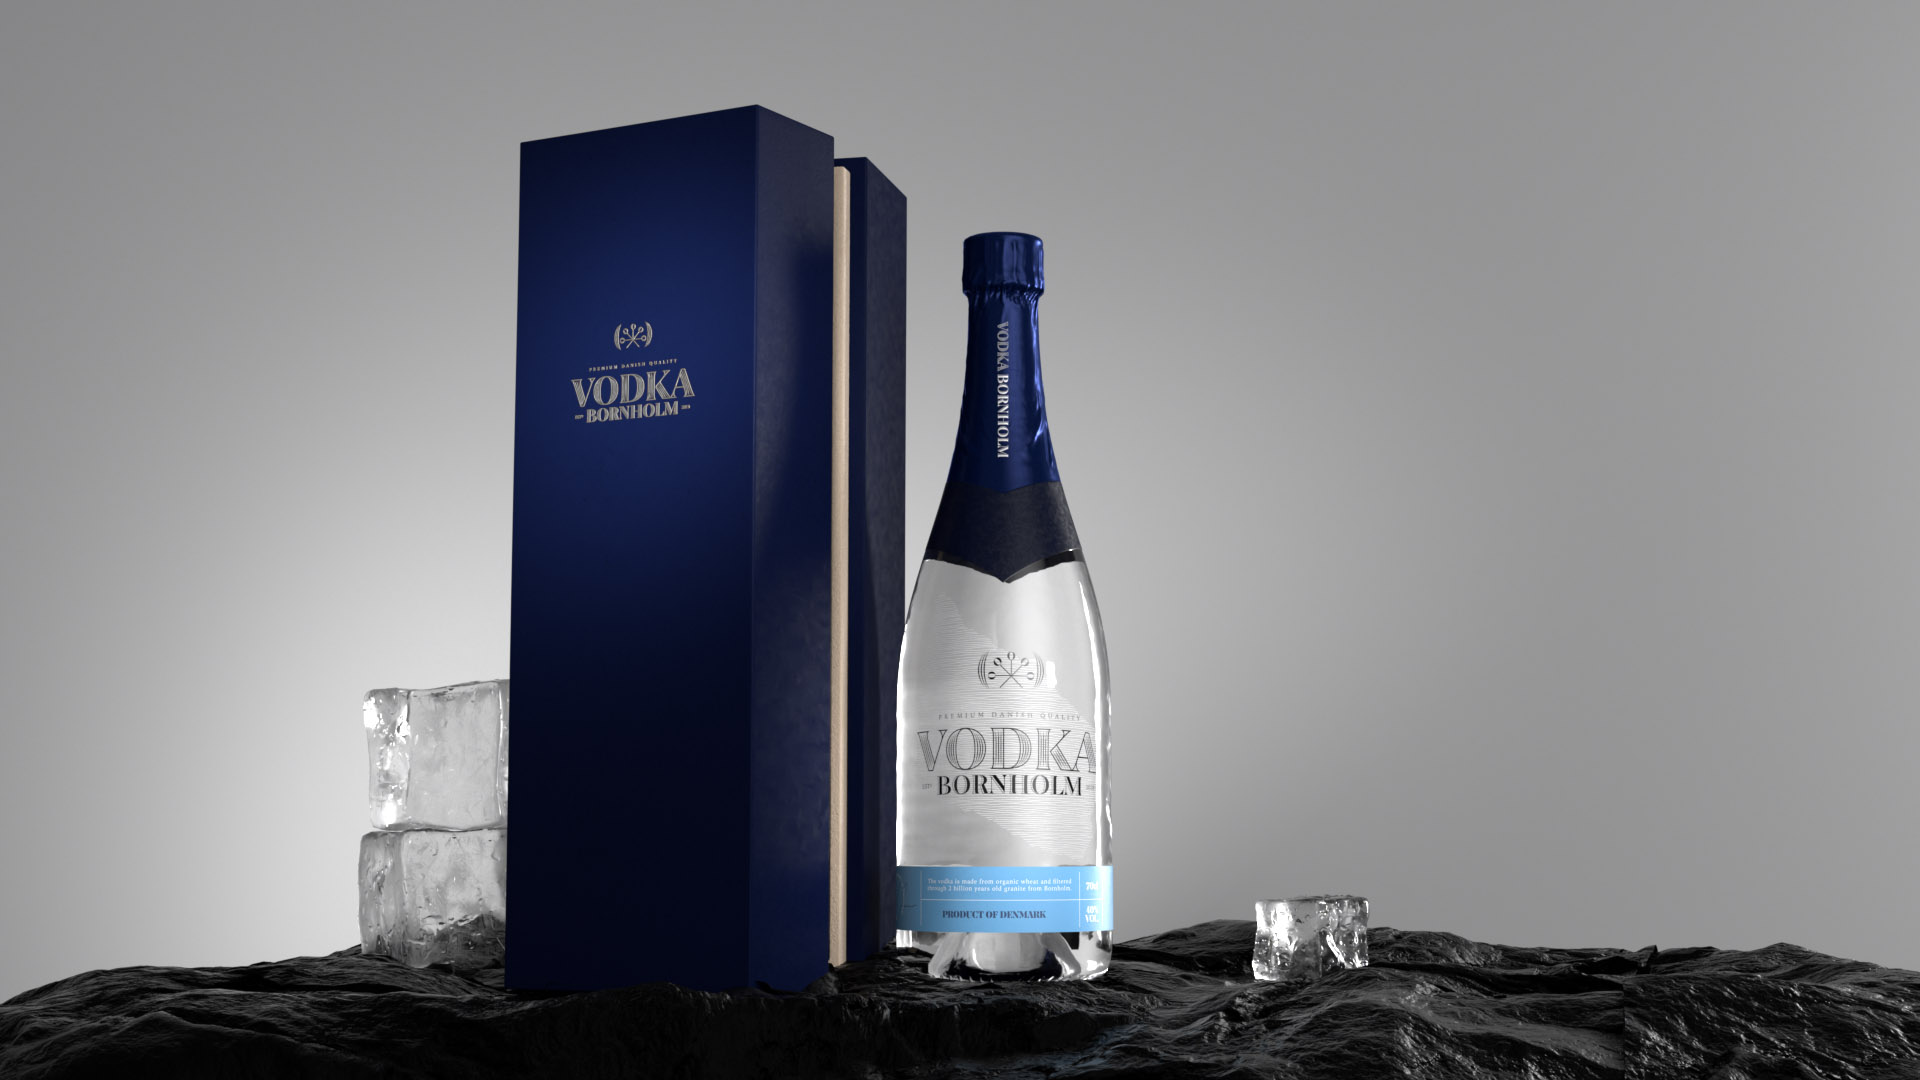 09 Vodka Bornholm Video Commercial 3D Product Hero shot